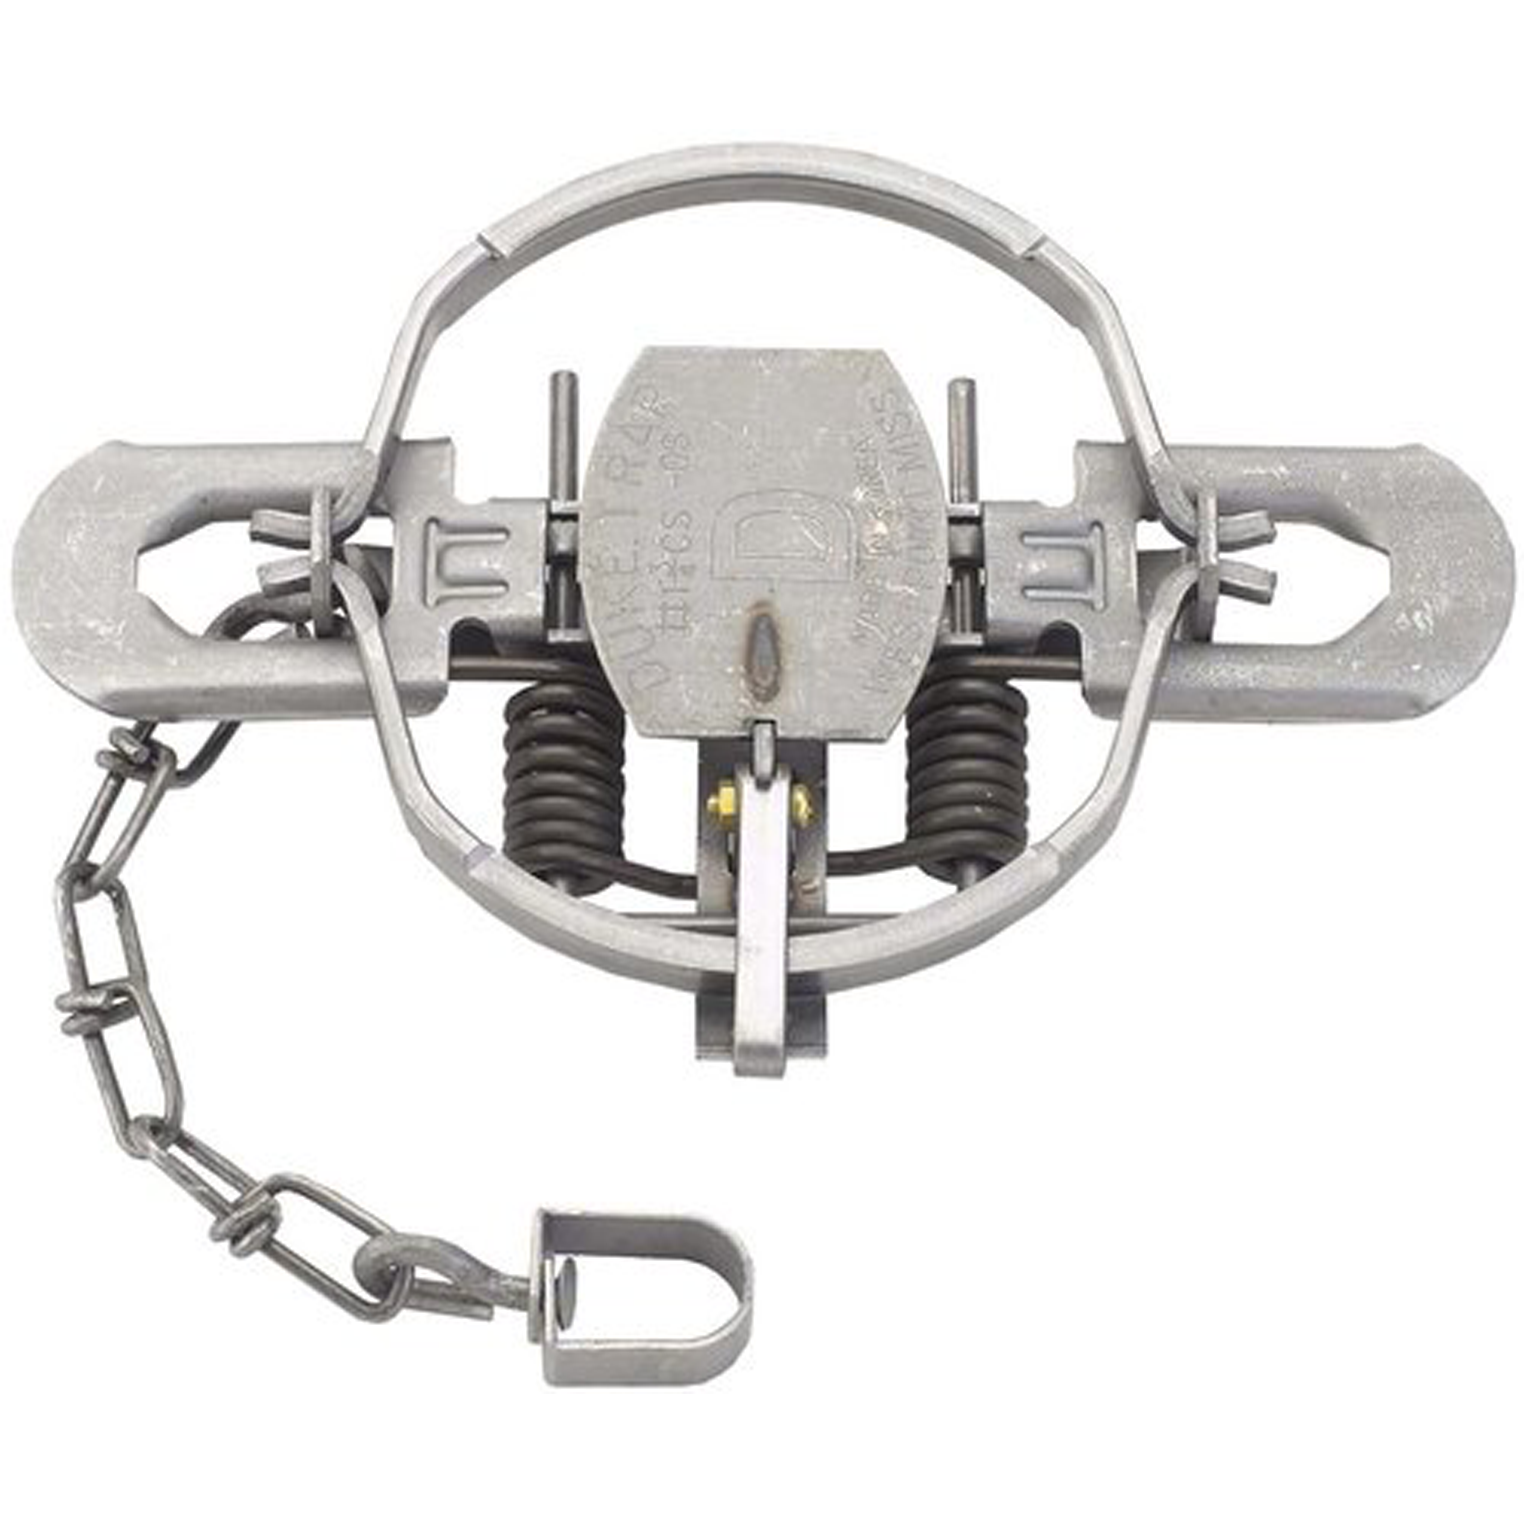 DUKE #1 3/4 COIL SPRING OFFSET TRAP